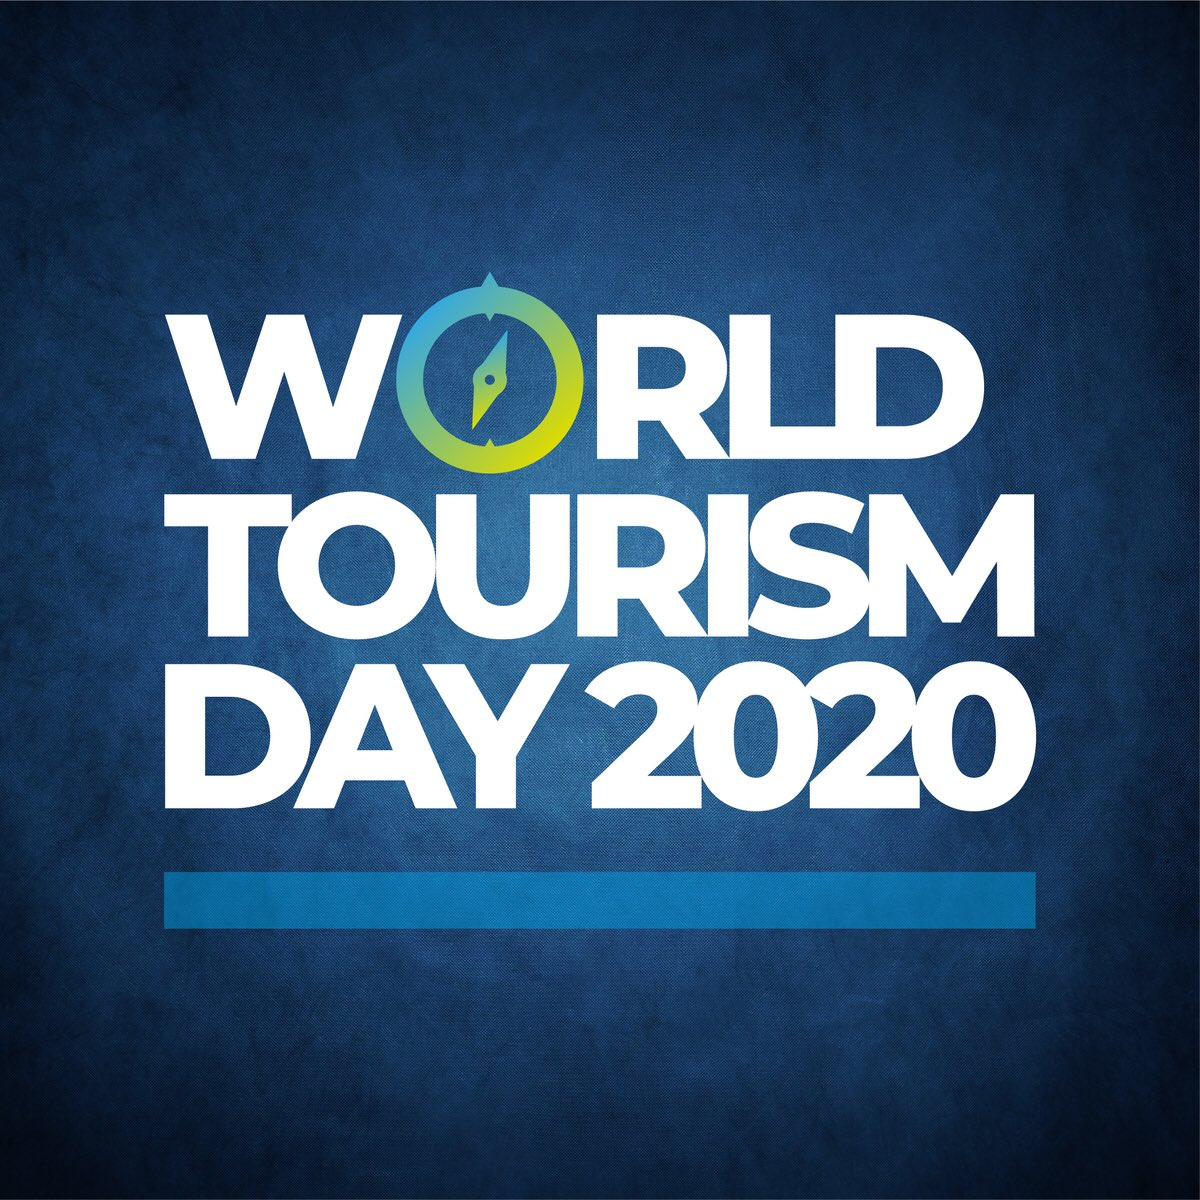 Today 27 September is WORLD TOURISM DAY this year the focus in on Tourism & Rural Development.  See link below to read more... https://t.co/tumoC9oKmu  #regionaltourism #buildbackbetter #tourismdrivesgrowth #roadtorecovery #covid19Australia #WTD2020 https://t.co/3hCvDBsGTR